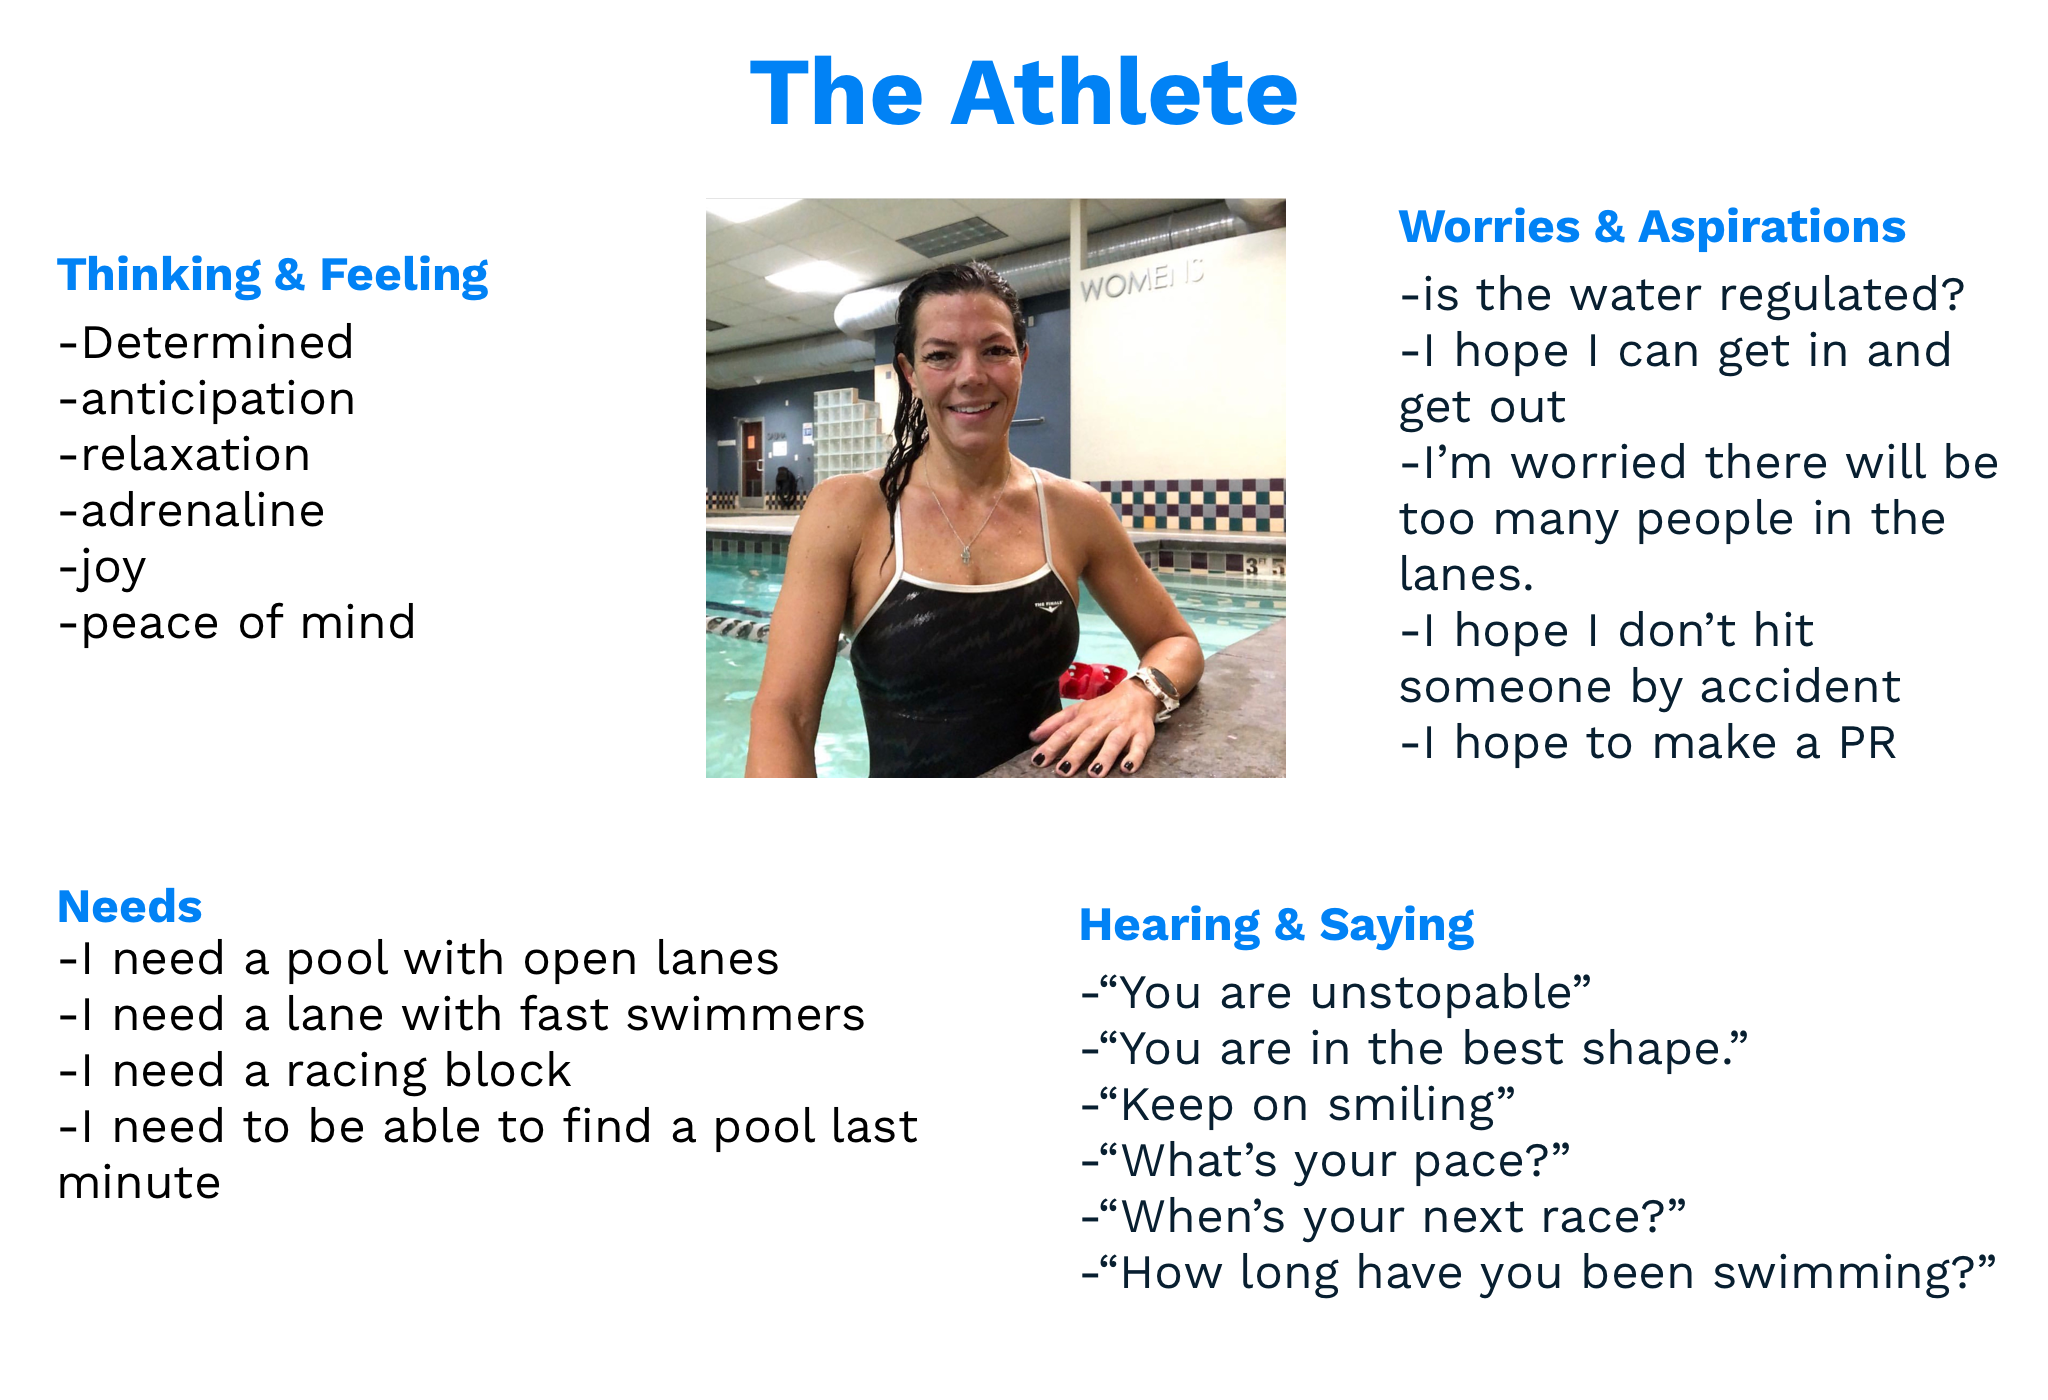 The Athlete @2x.png